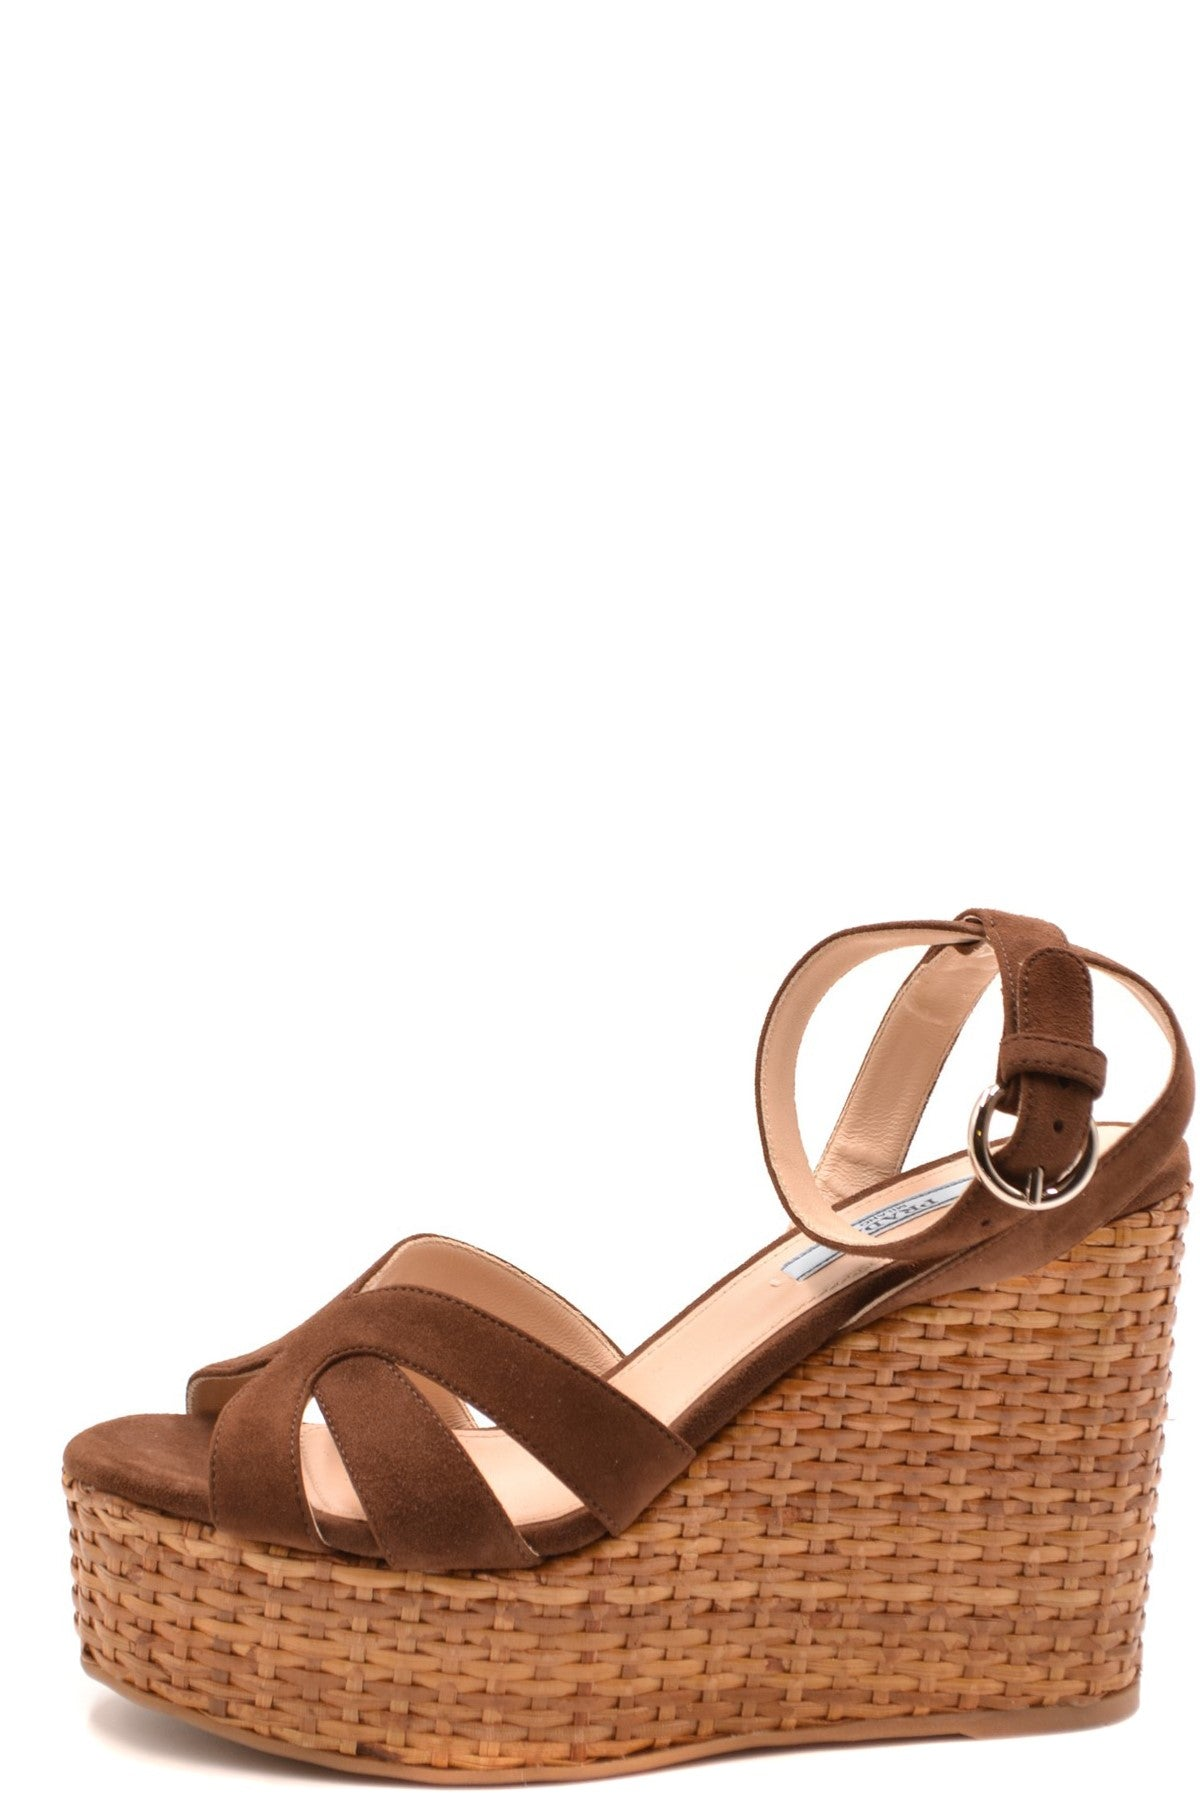 Shoes Prada-Women's Fashion - Women's Shoes - Women's Sandals-Product Details Terms: New With LabelMain Color: MarrónType Of Accessory: ShoesSeason: Spring / SummerMade In: ItalyGender: WomanSize: EuComposition: Chamois 100%Year: 2020Manufacturer Part Number: 1Xz705 008 F0038-Keyomi-Sook